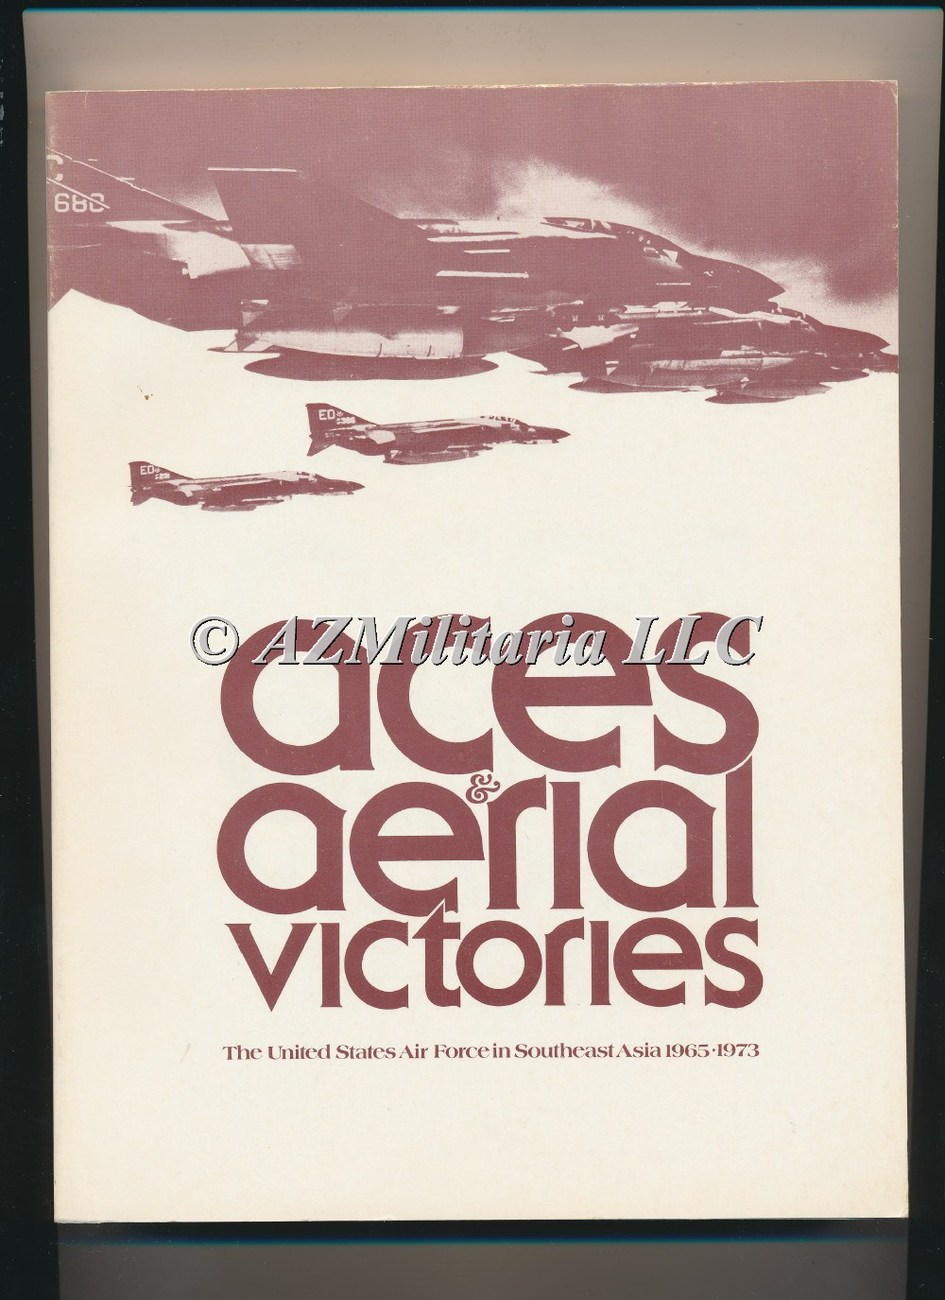 Aces & Aerial Victories The United States Air Force in Southeast Asia 1965-1973